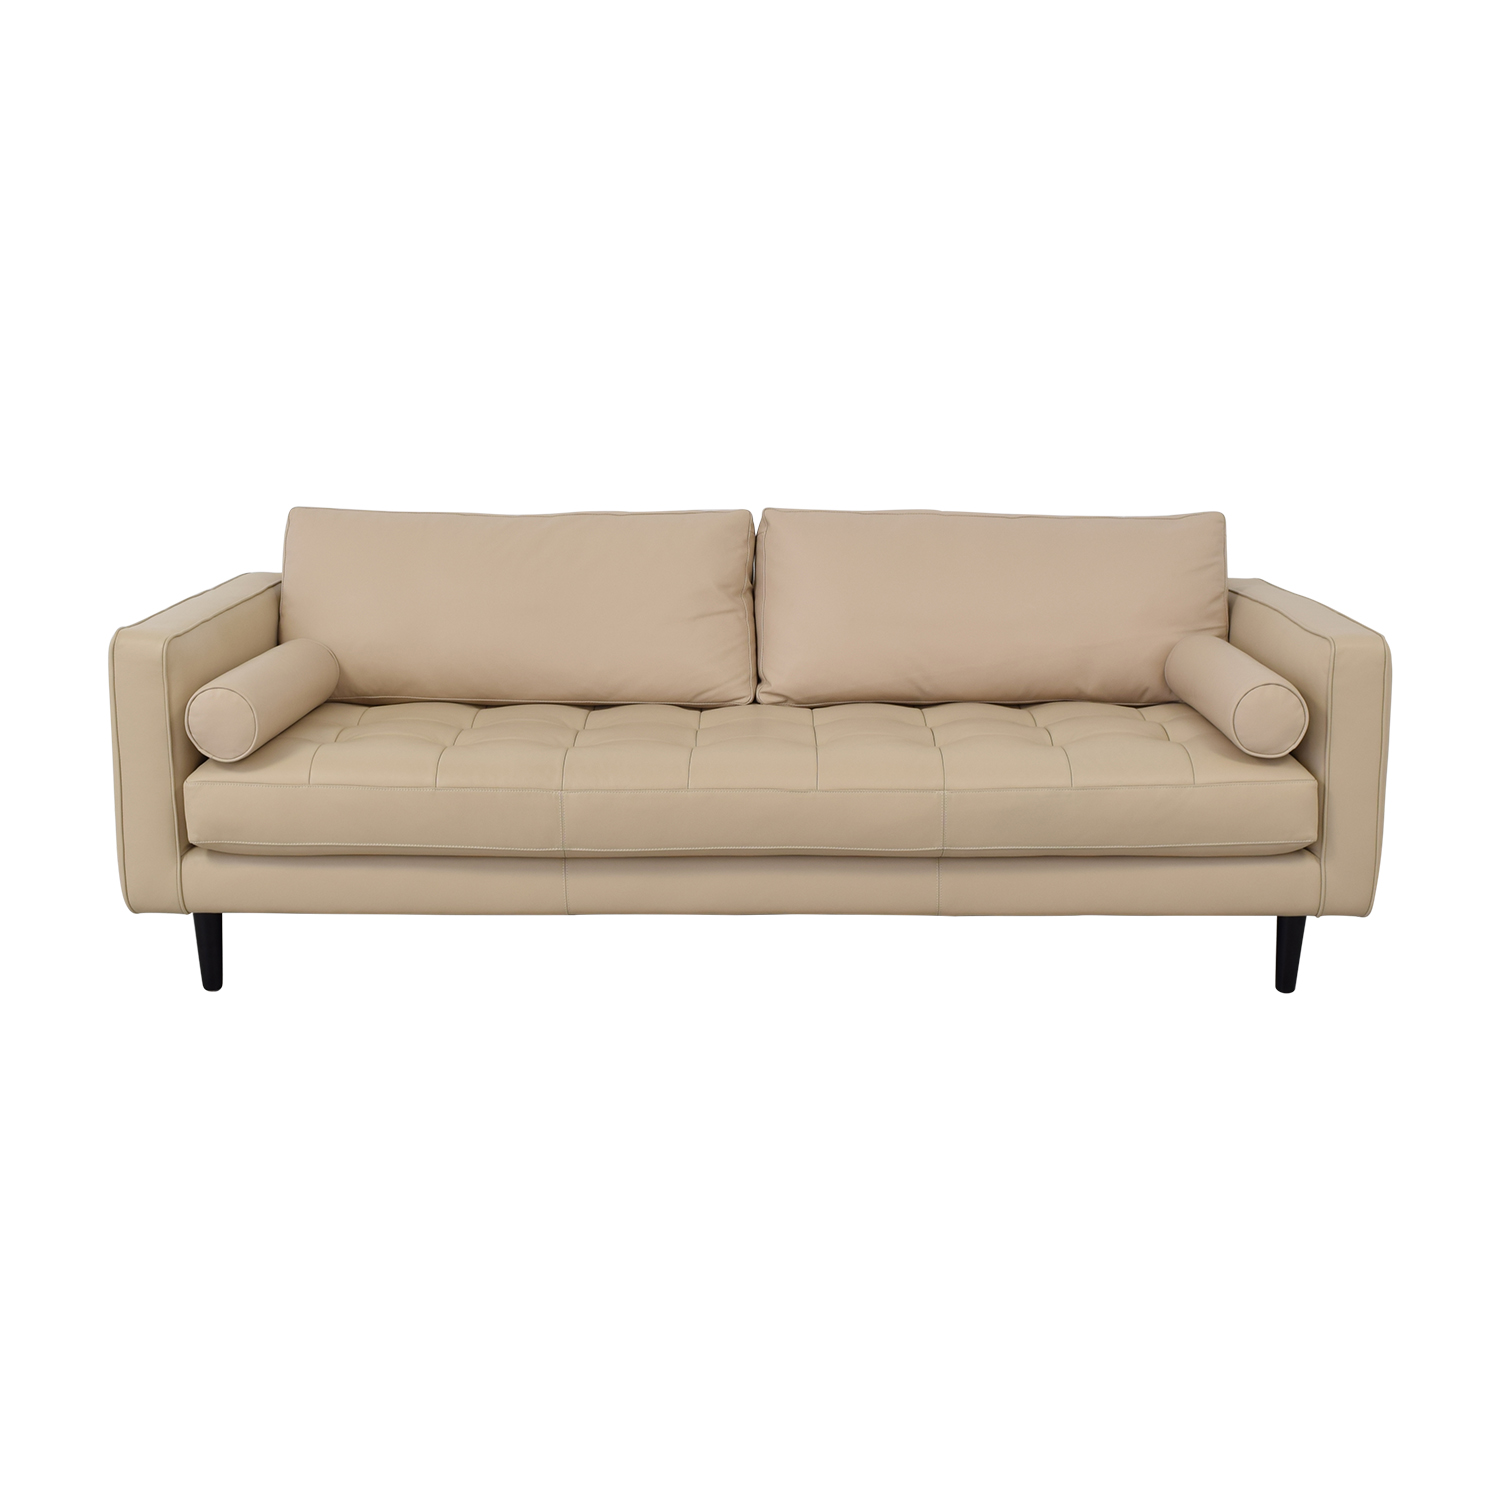 Rove Concepts Rove Concepts Sandro Luca Sofa (Florence Nude Leather) second hand